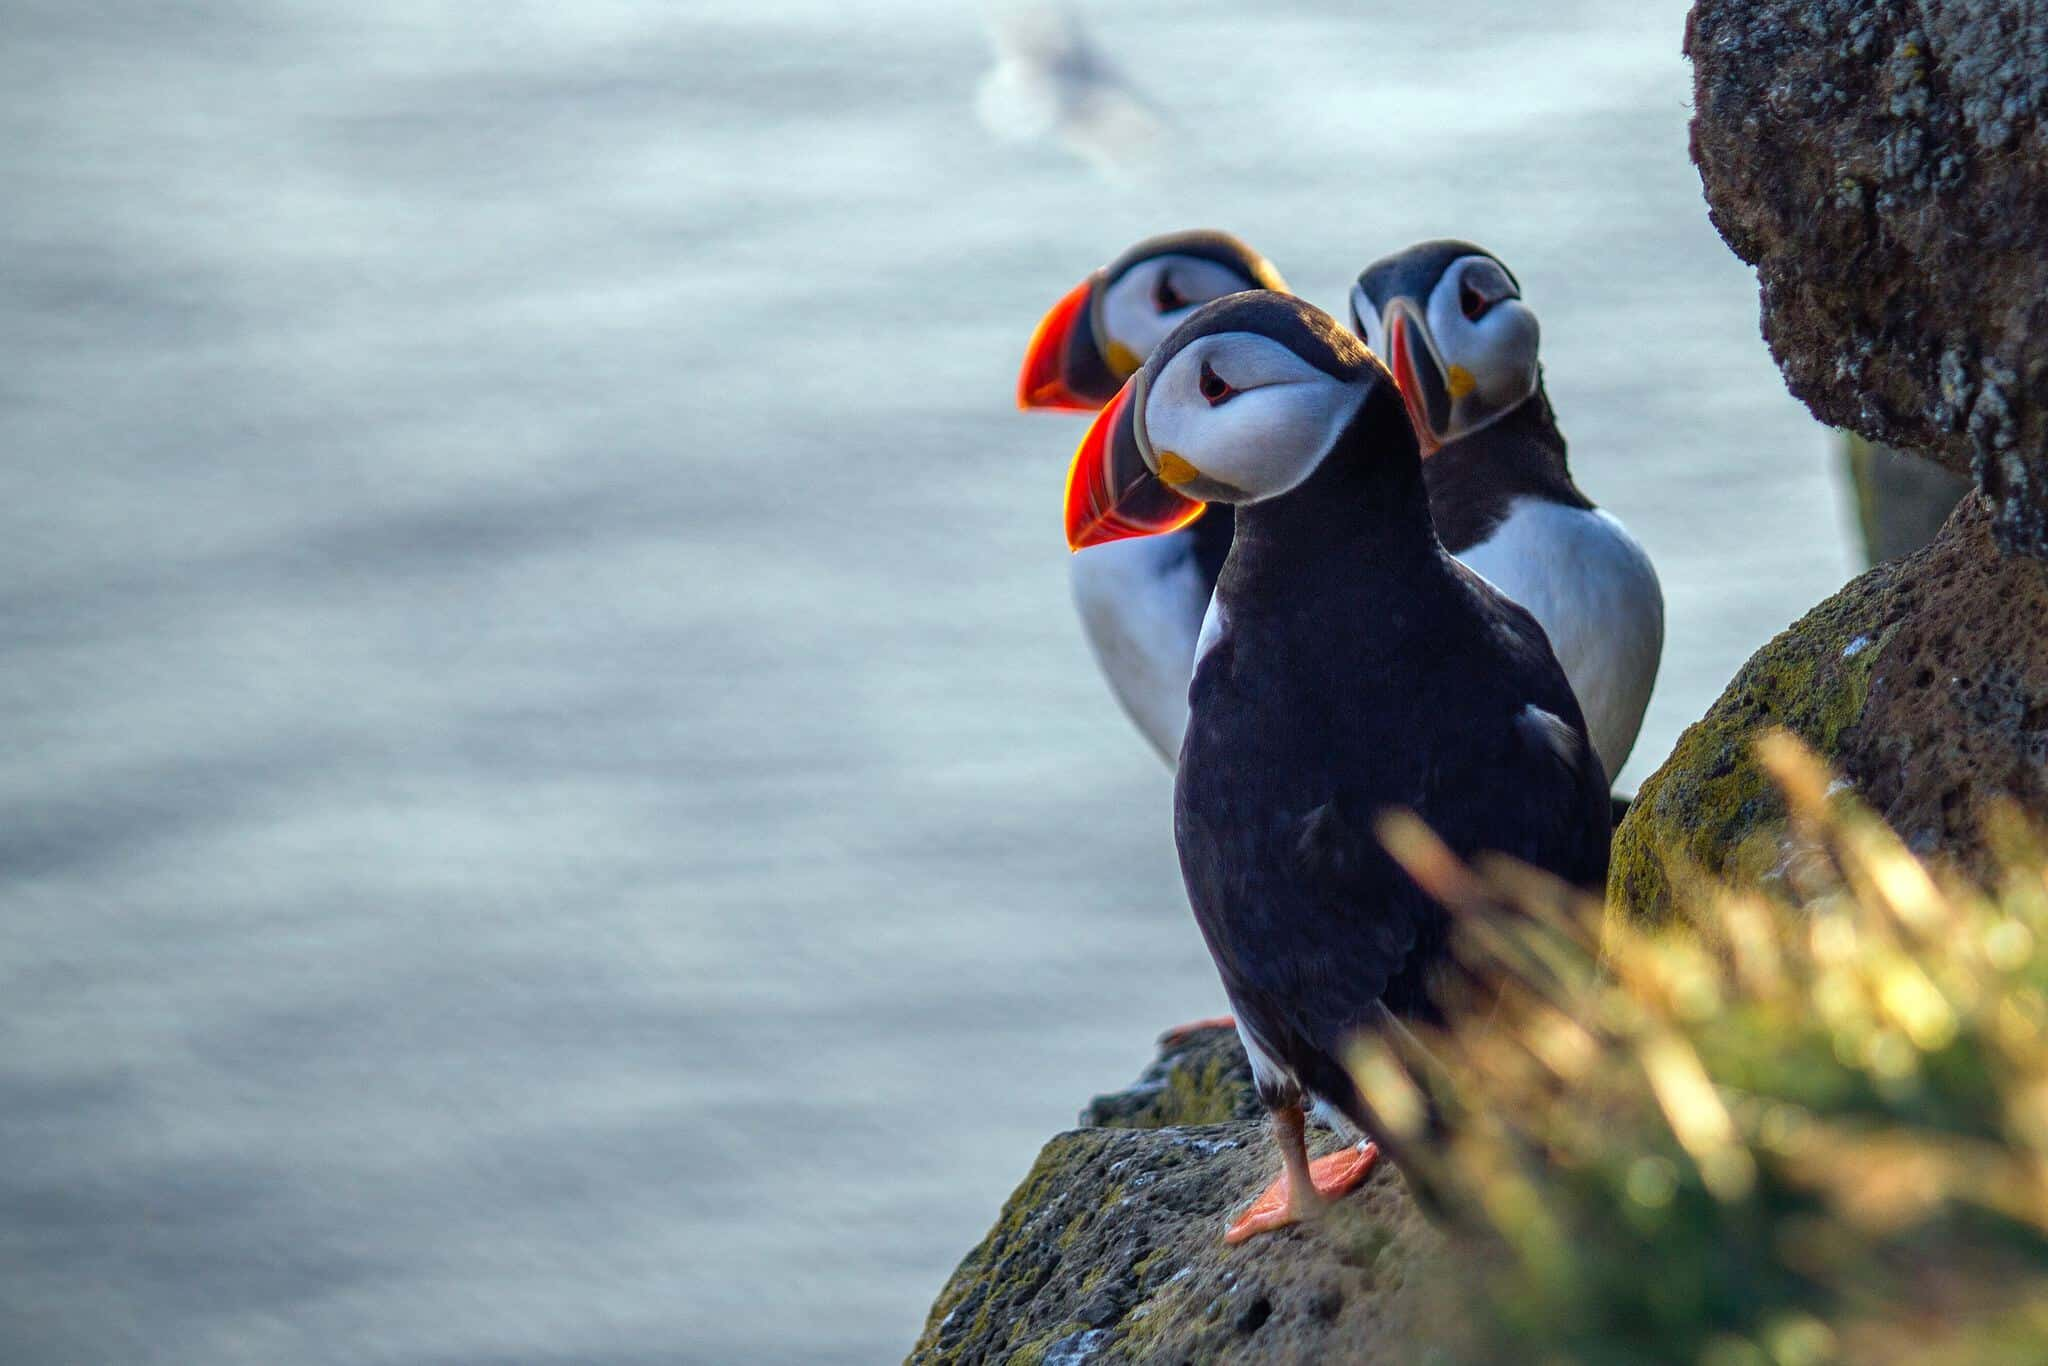 The puffin is a remarkable bird, almost penguin-like. The beak consists of bright colors of yellow, red and blue gray.